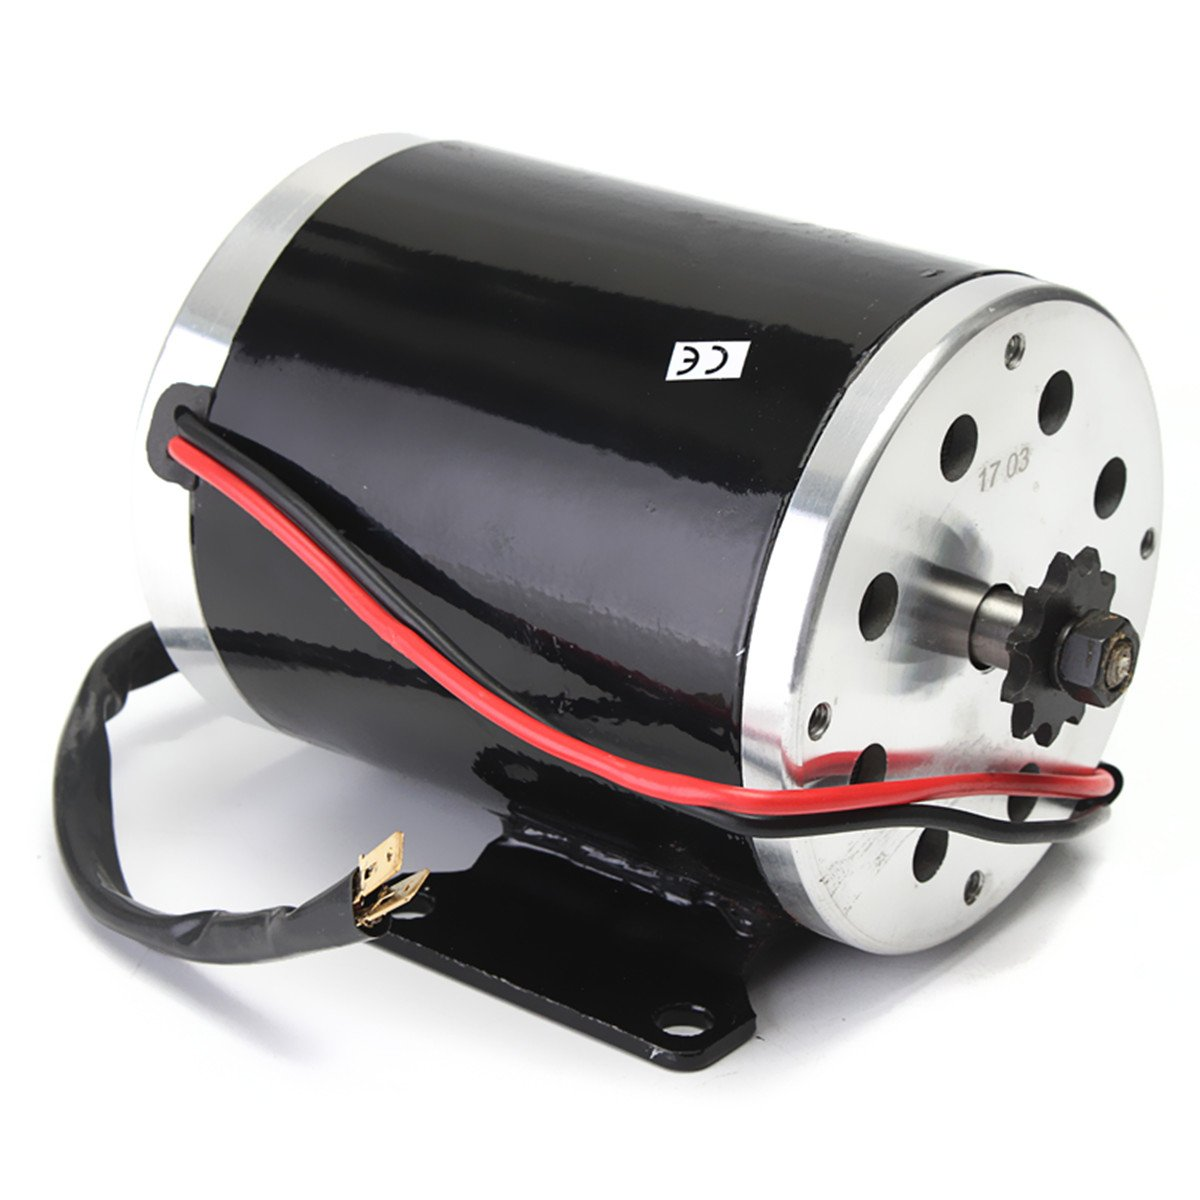 NeDonald 24V 500W 28.5A Electric Brushed Motor 2800Rpm w/Bracket for Scooter E-Bike Mini Bike Go Kart